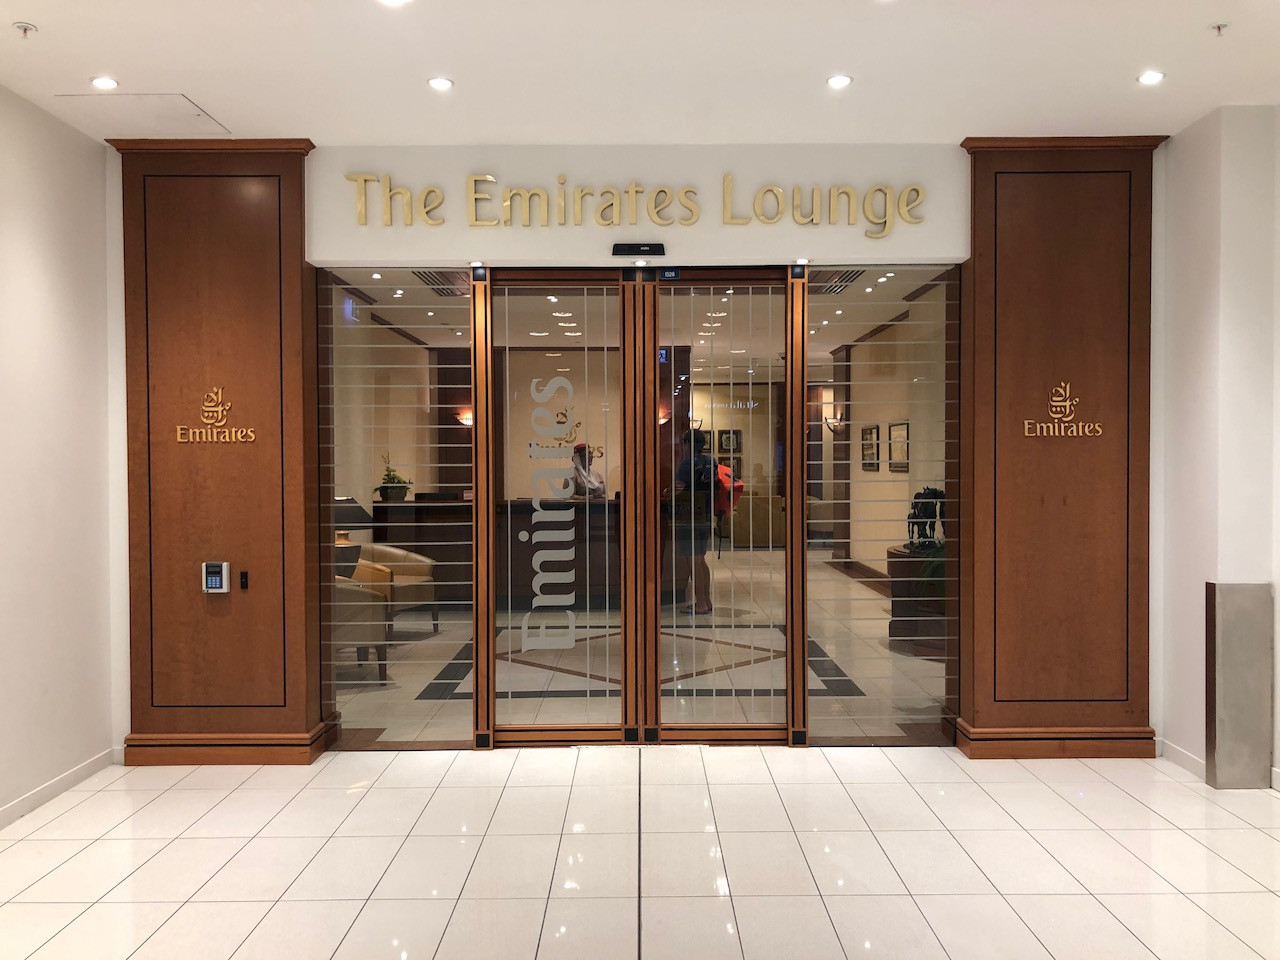 Emirates Lounge at Auckland International Airport, New Zealand